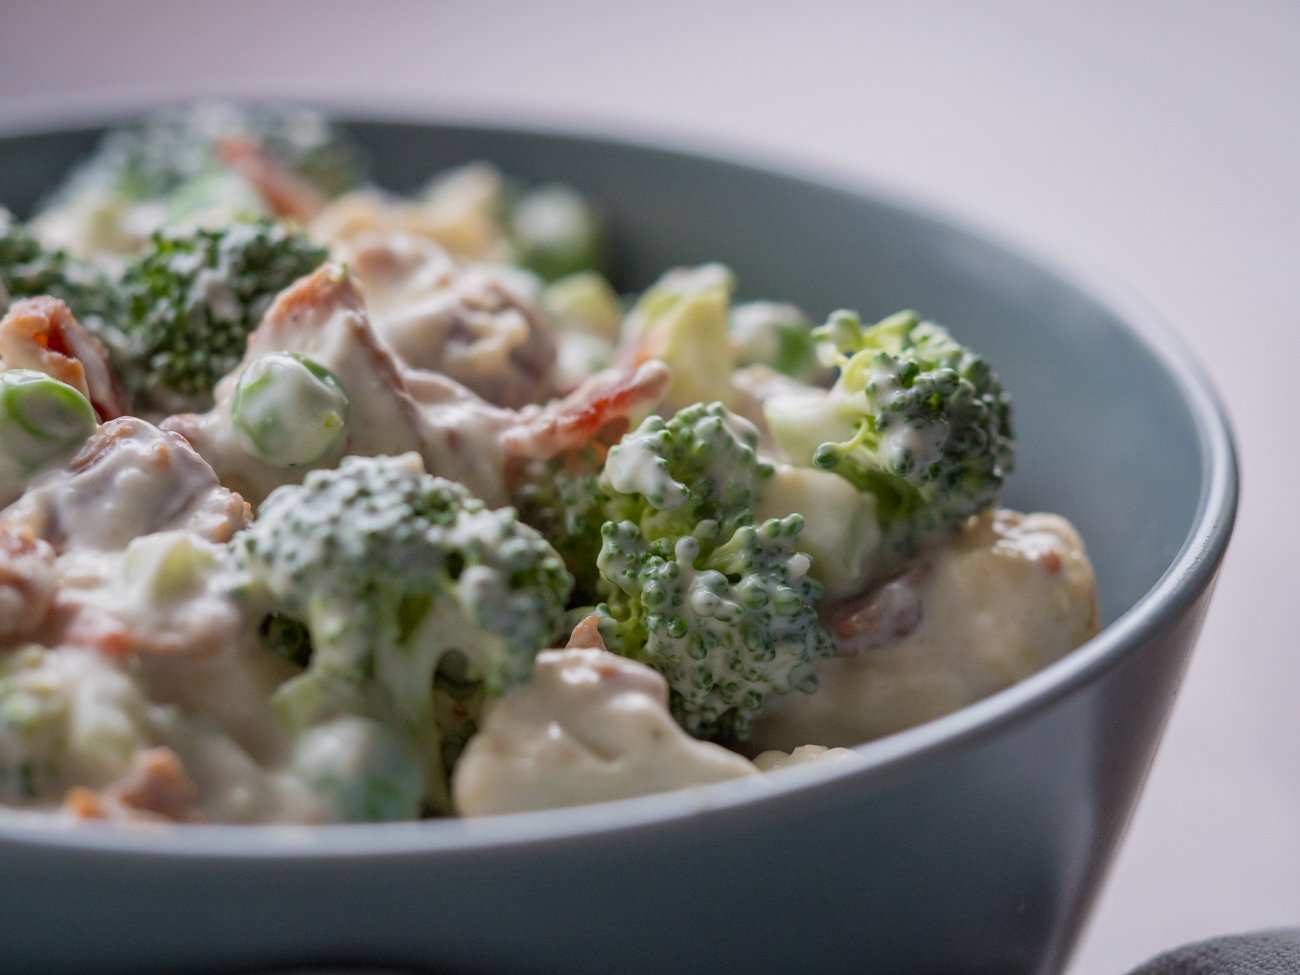 Broccoli Cauliflower Salad Horizontal 7